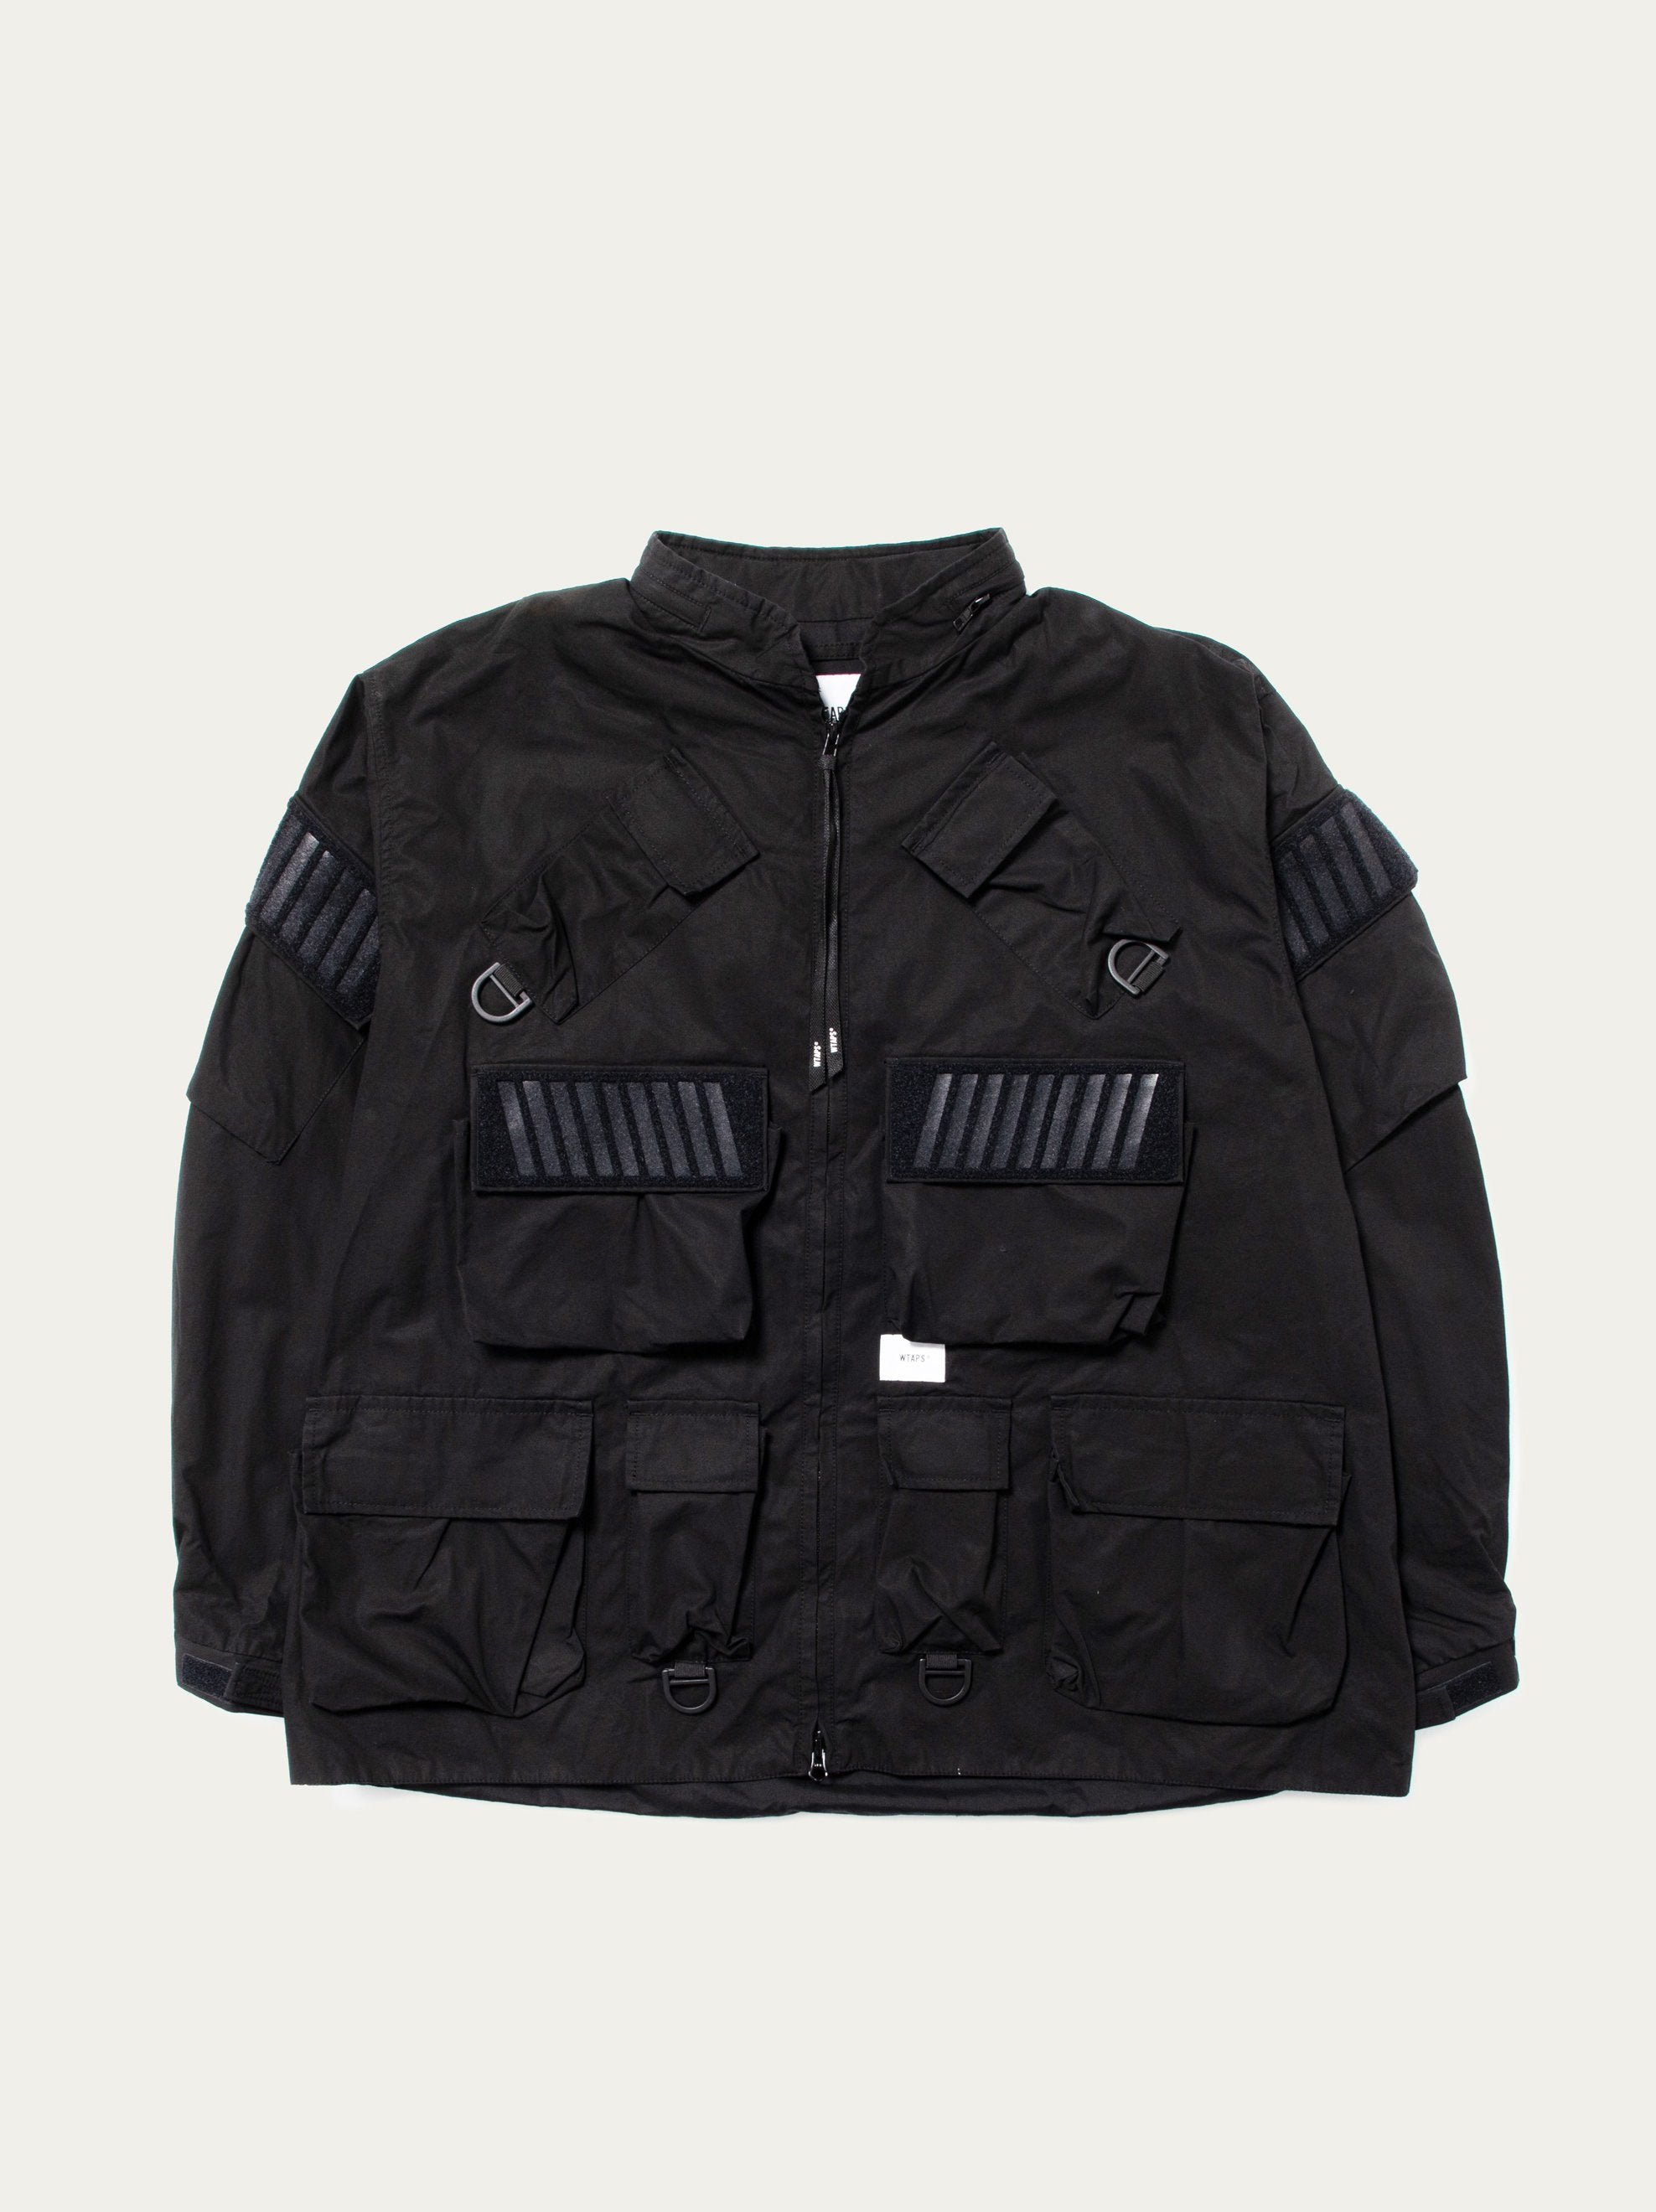 Black Modular / Jacket. Cotton. Weather 1